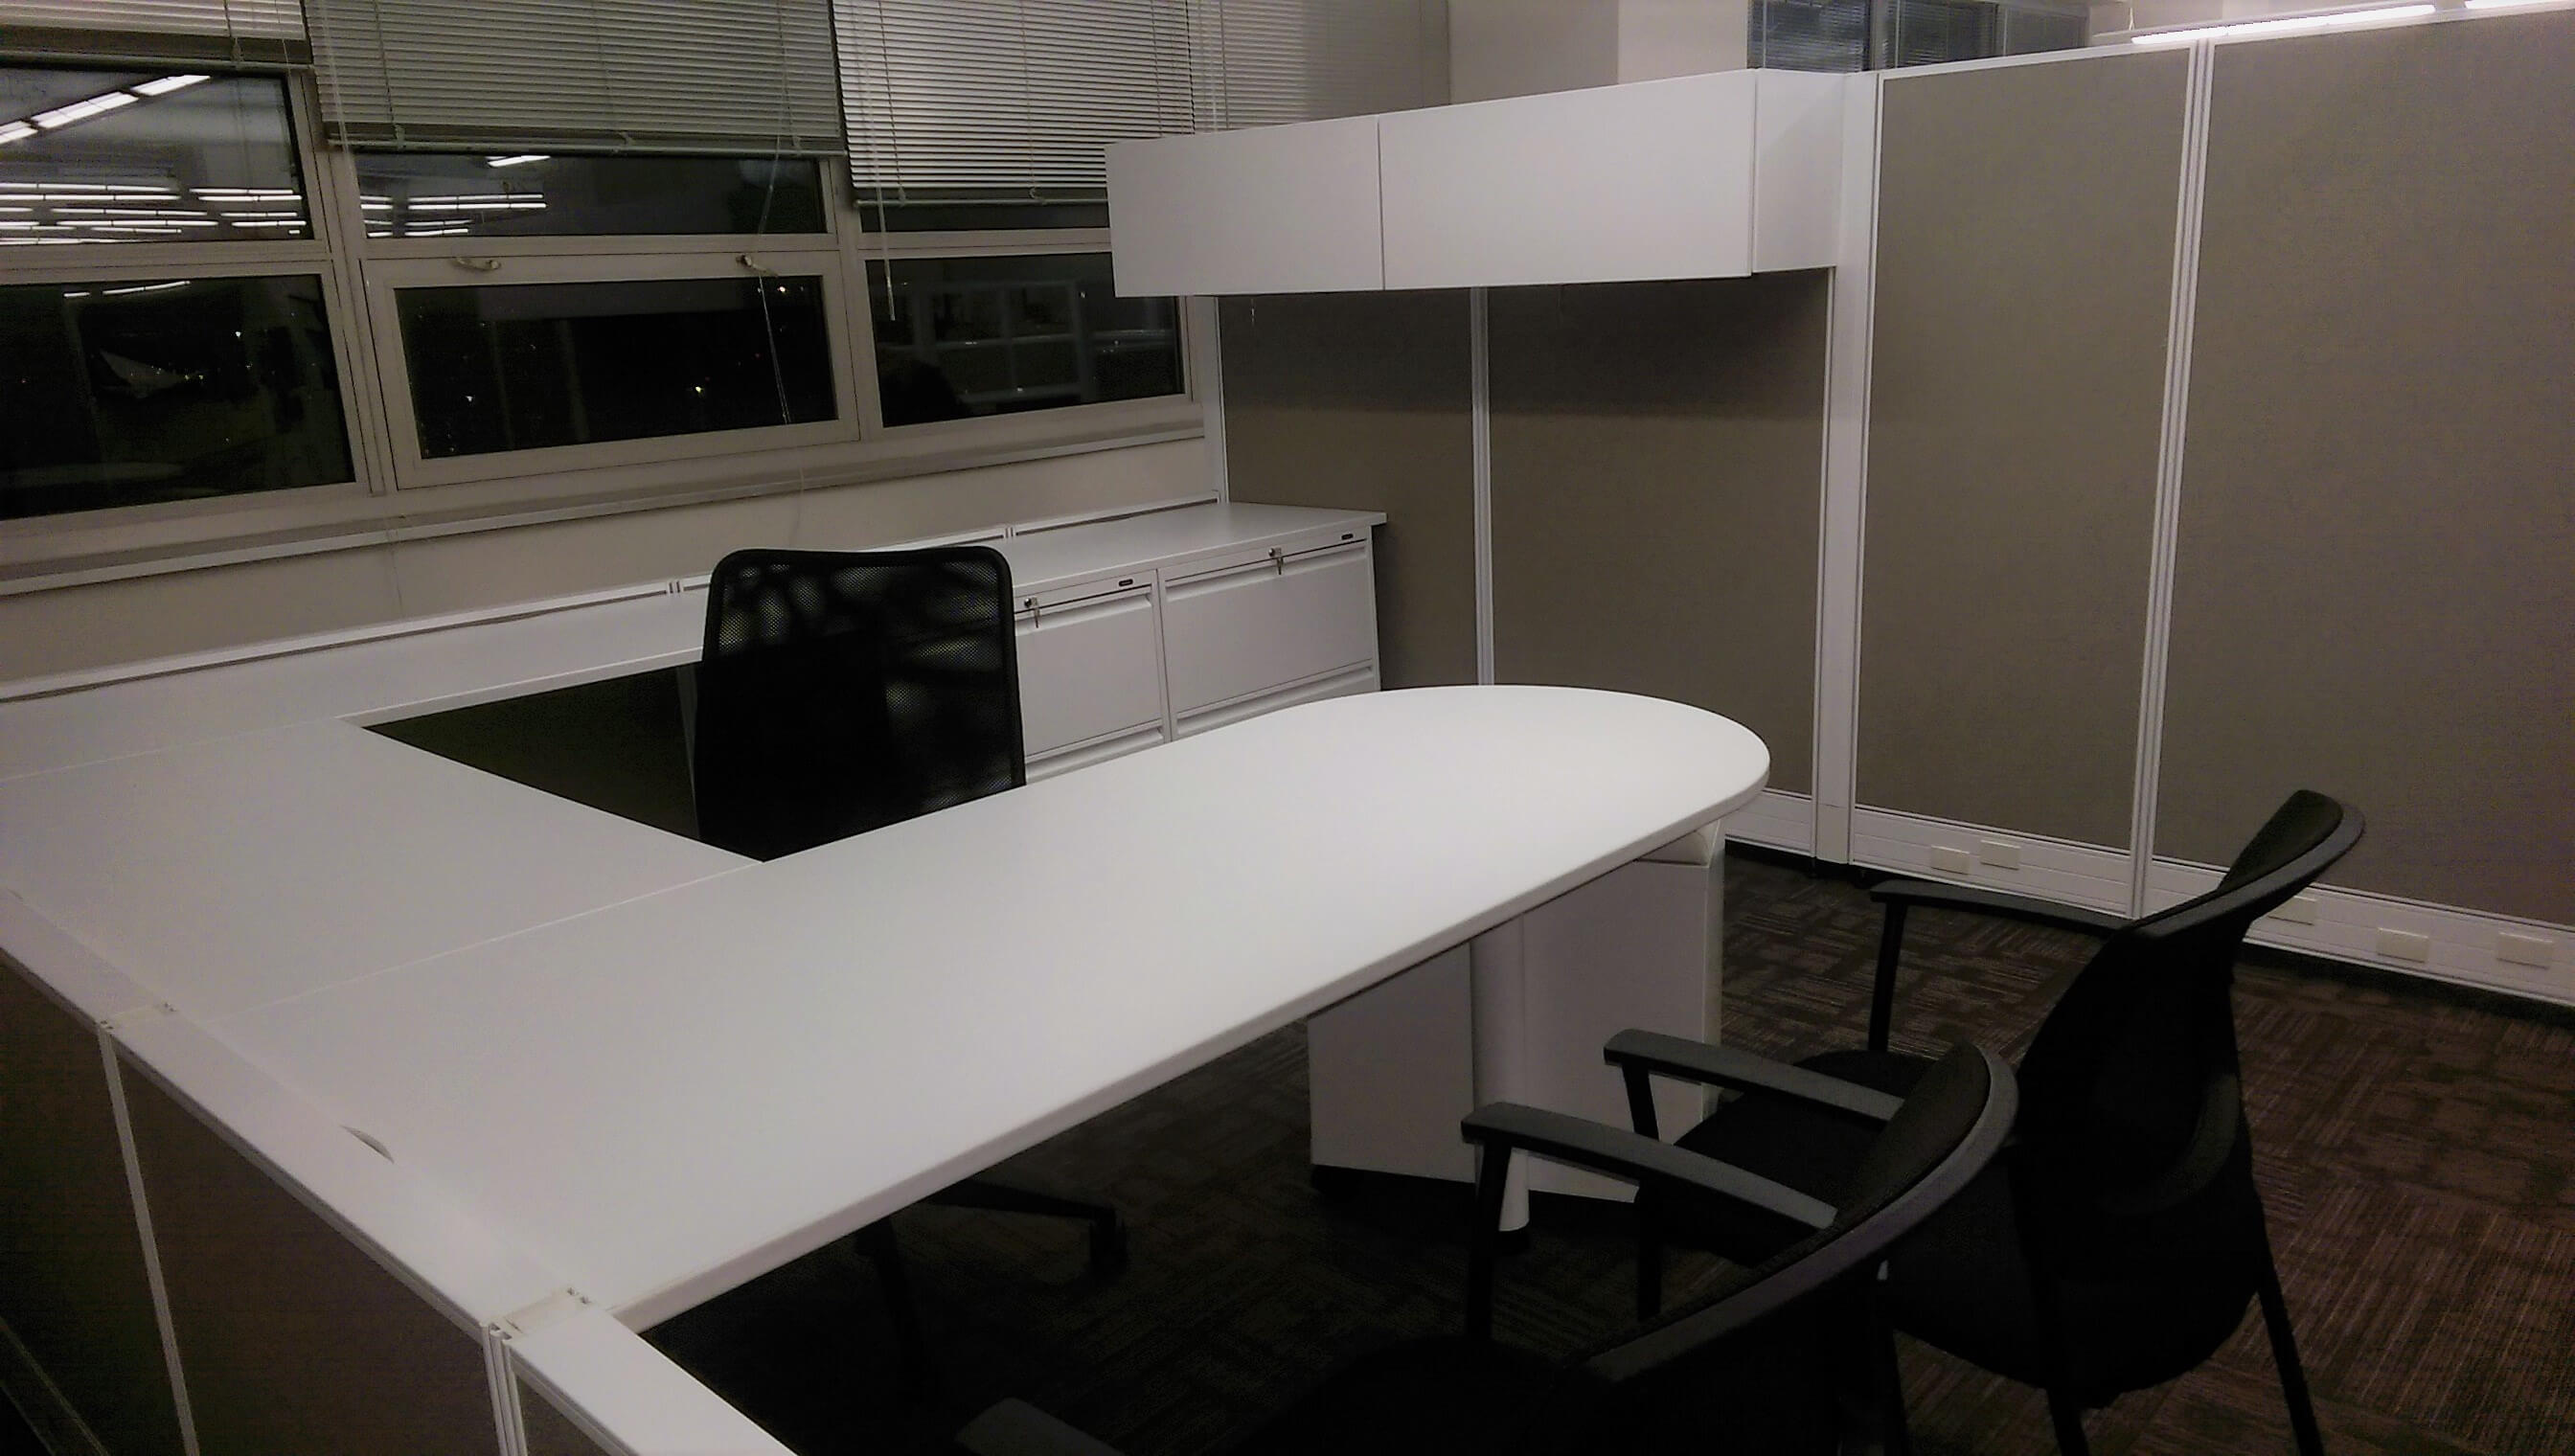 Office design furniture installation in queens ny for lefrak